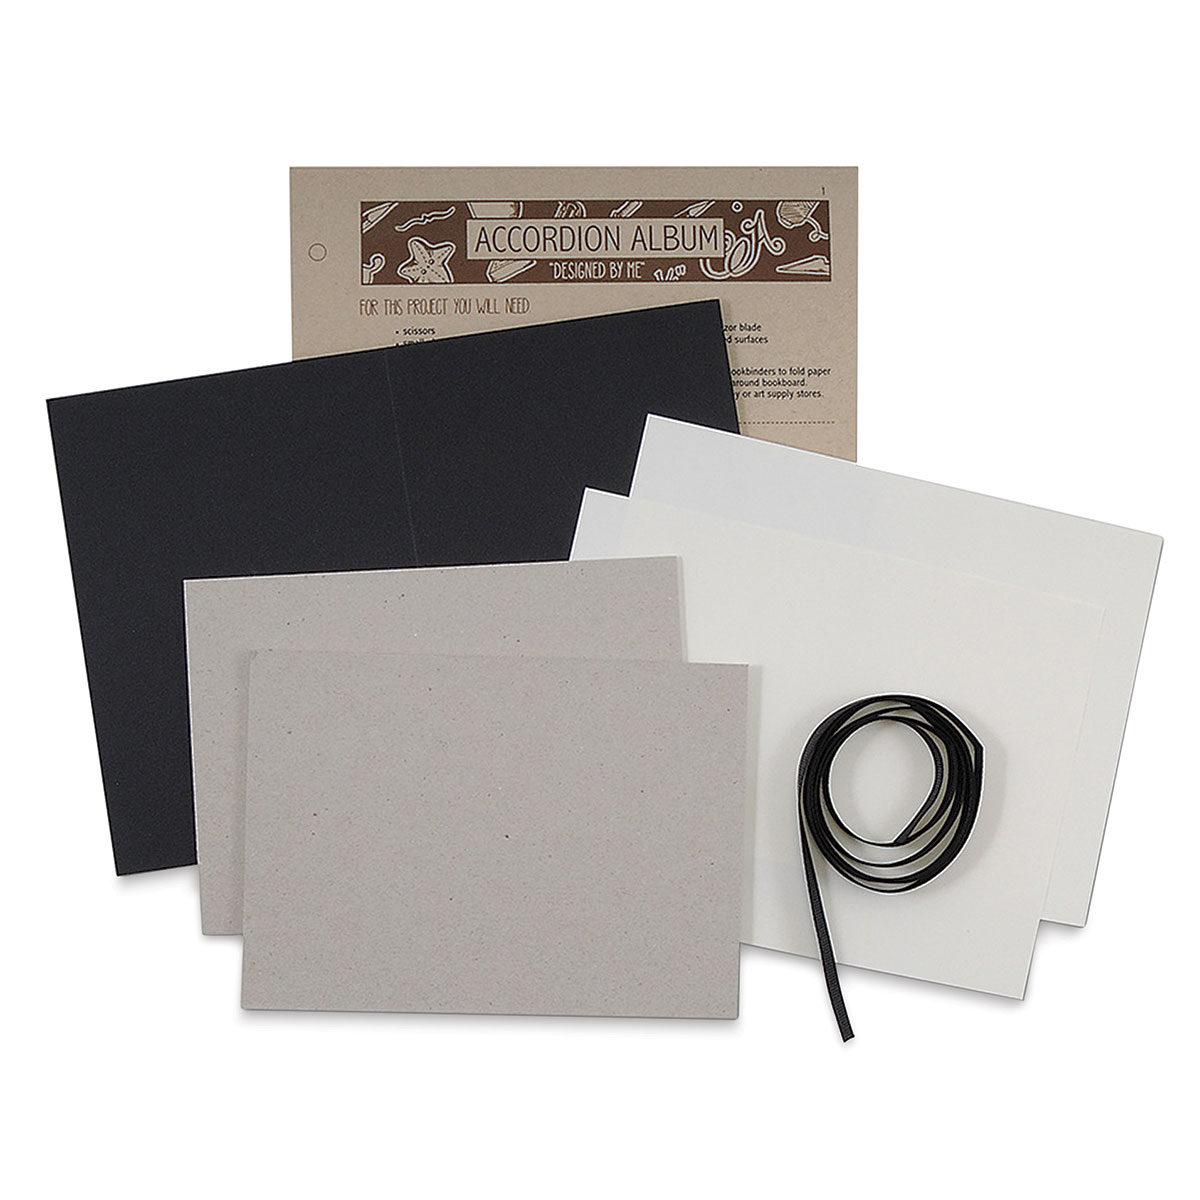 Great use for Scoring DIY Paper Crafts Folding and Creasing Paper Handmade Crafts Bookbinding Lineco Genuine Bone Scorer and More. Cards Perfect for Leather Scrapbooking